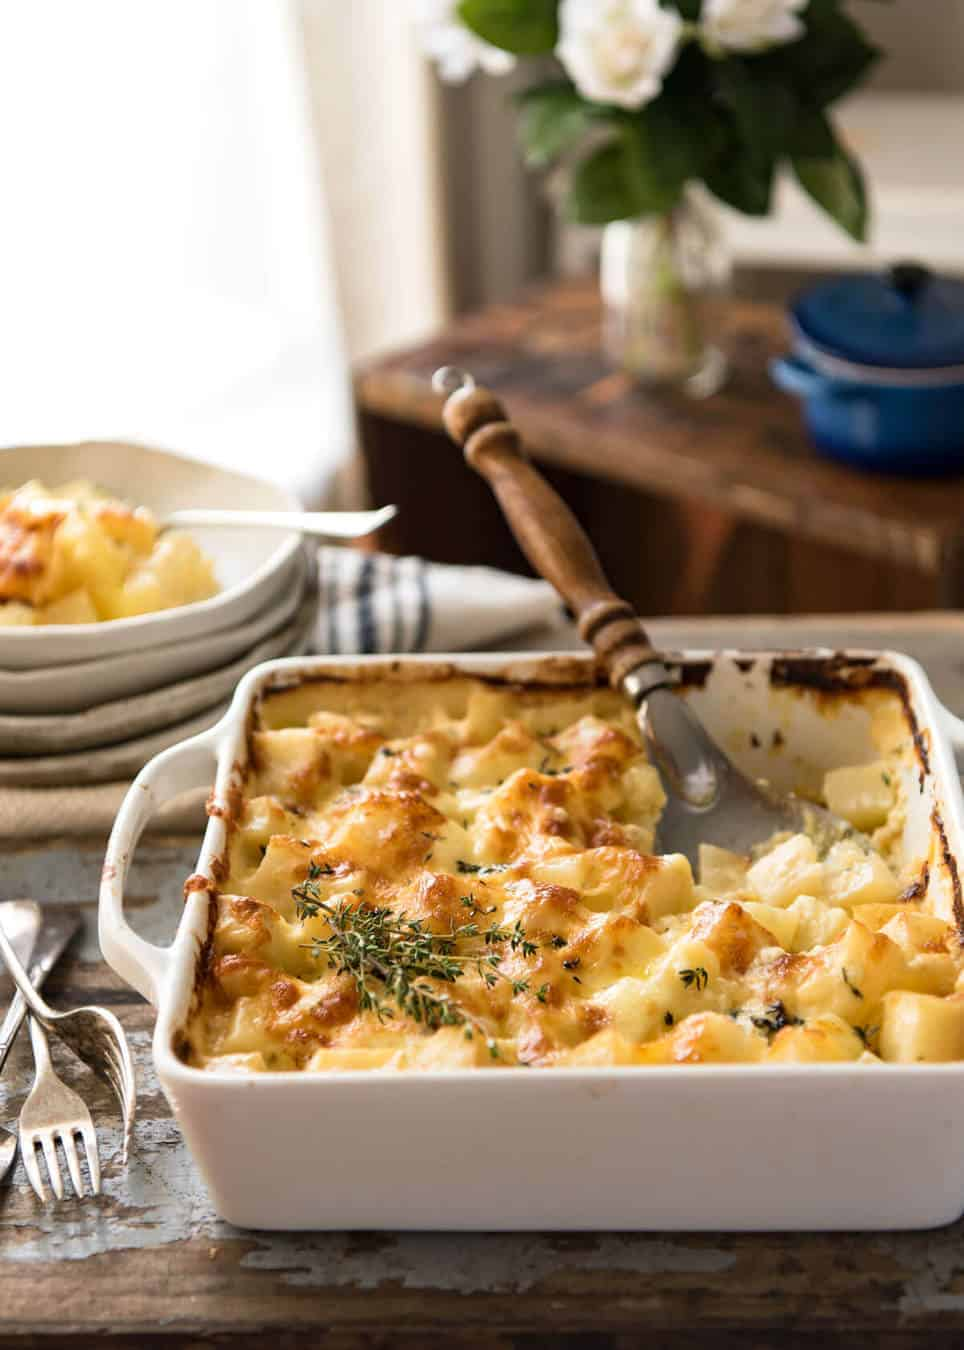 A faster, cheesier, creamier alternative to Scalloped Potatoes / Potato Gratin, this Easy Creamy Cheesy Potato Bake is made with cubed potatoes cooked in a cream and cheese sauce. recipetineats.com